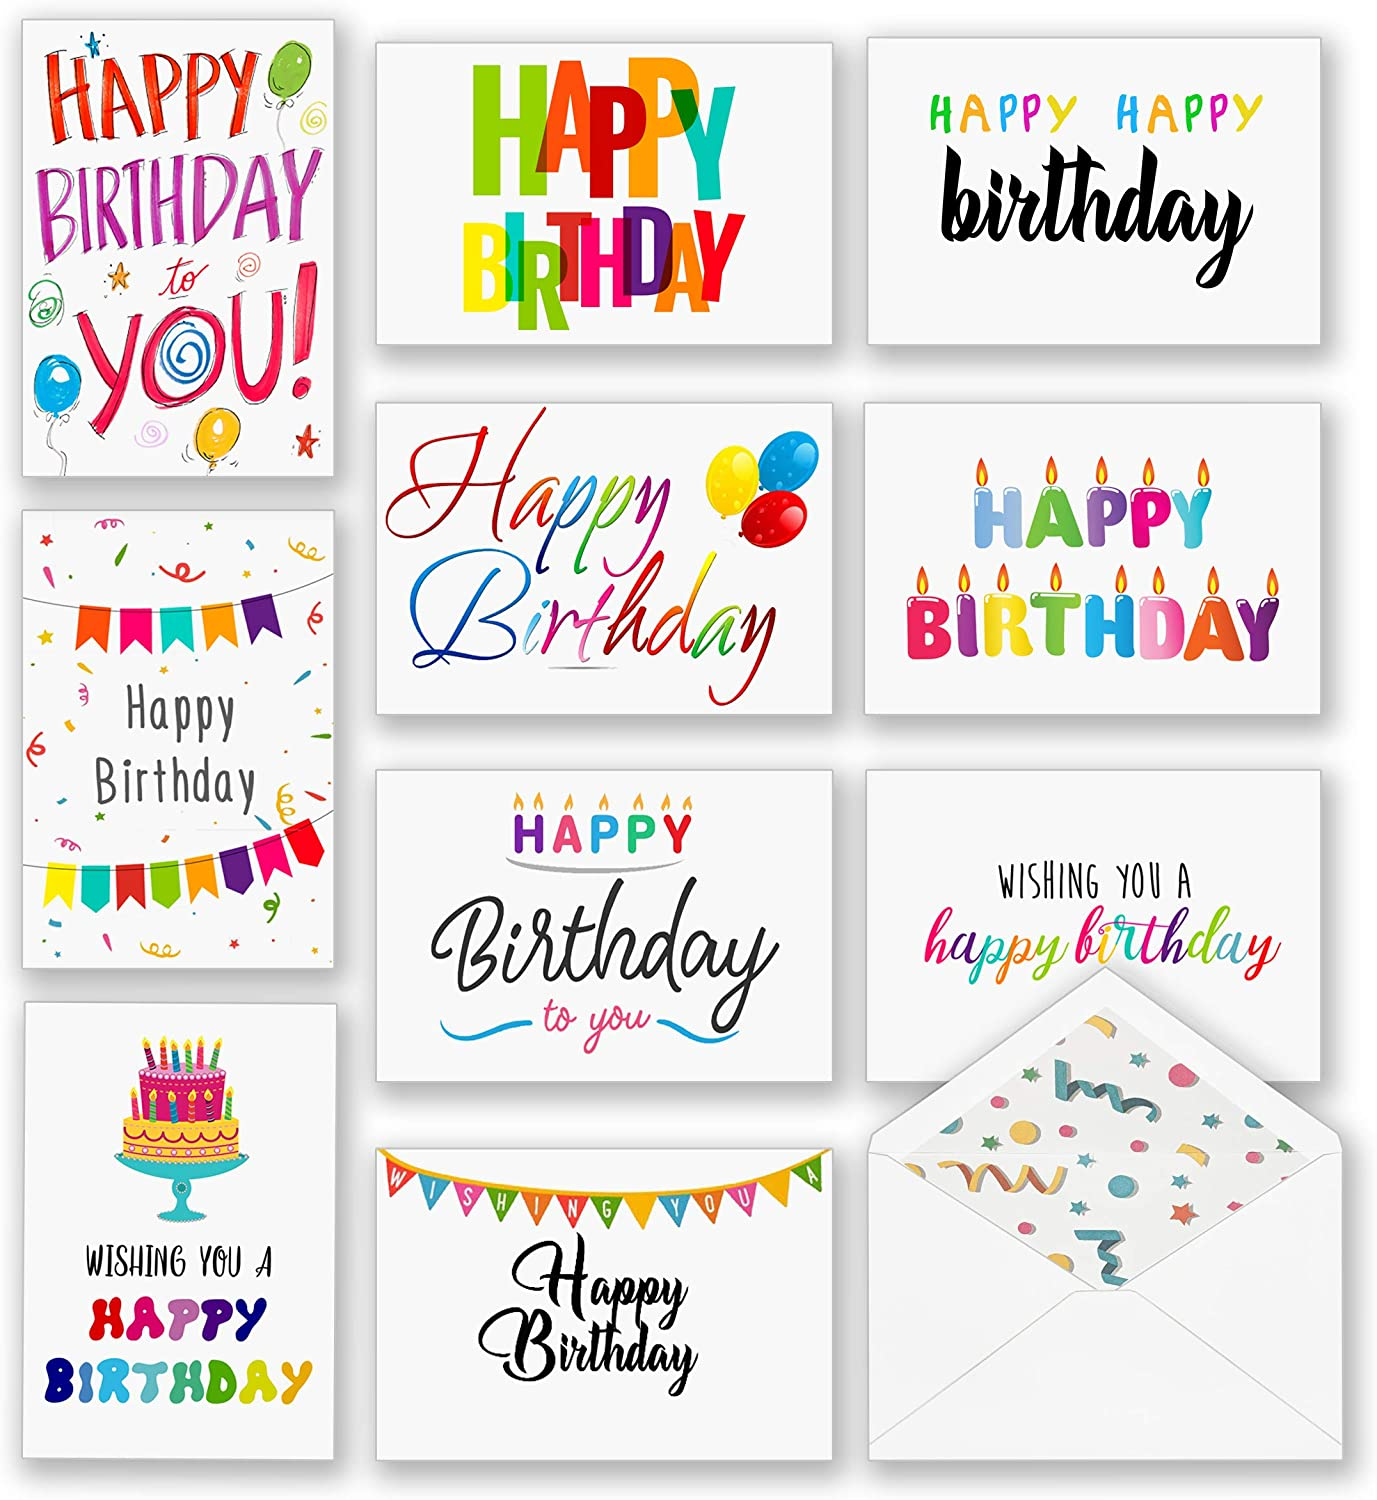 100 Happy Birthday Cards Jacksonville Mall Bulk Large Greeting Assorted Inch Courier shipping free shipping 5x7